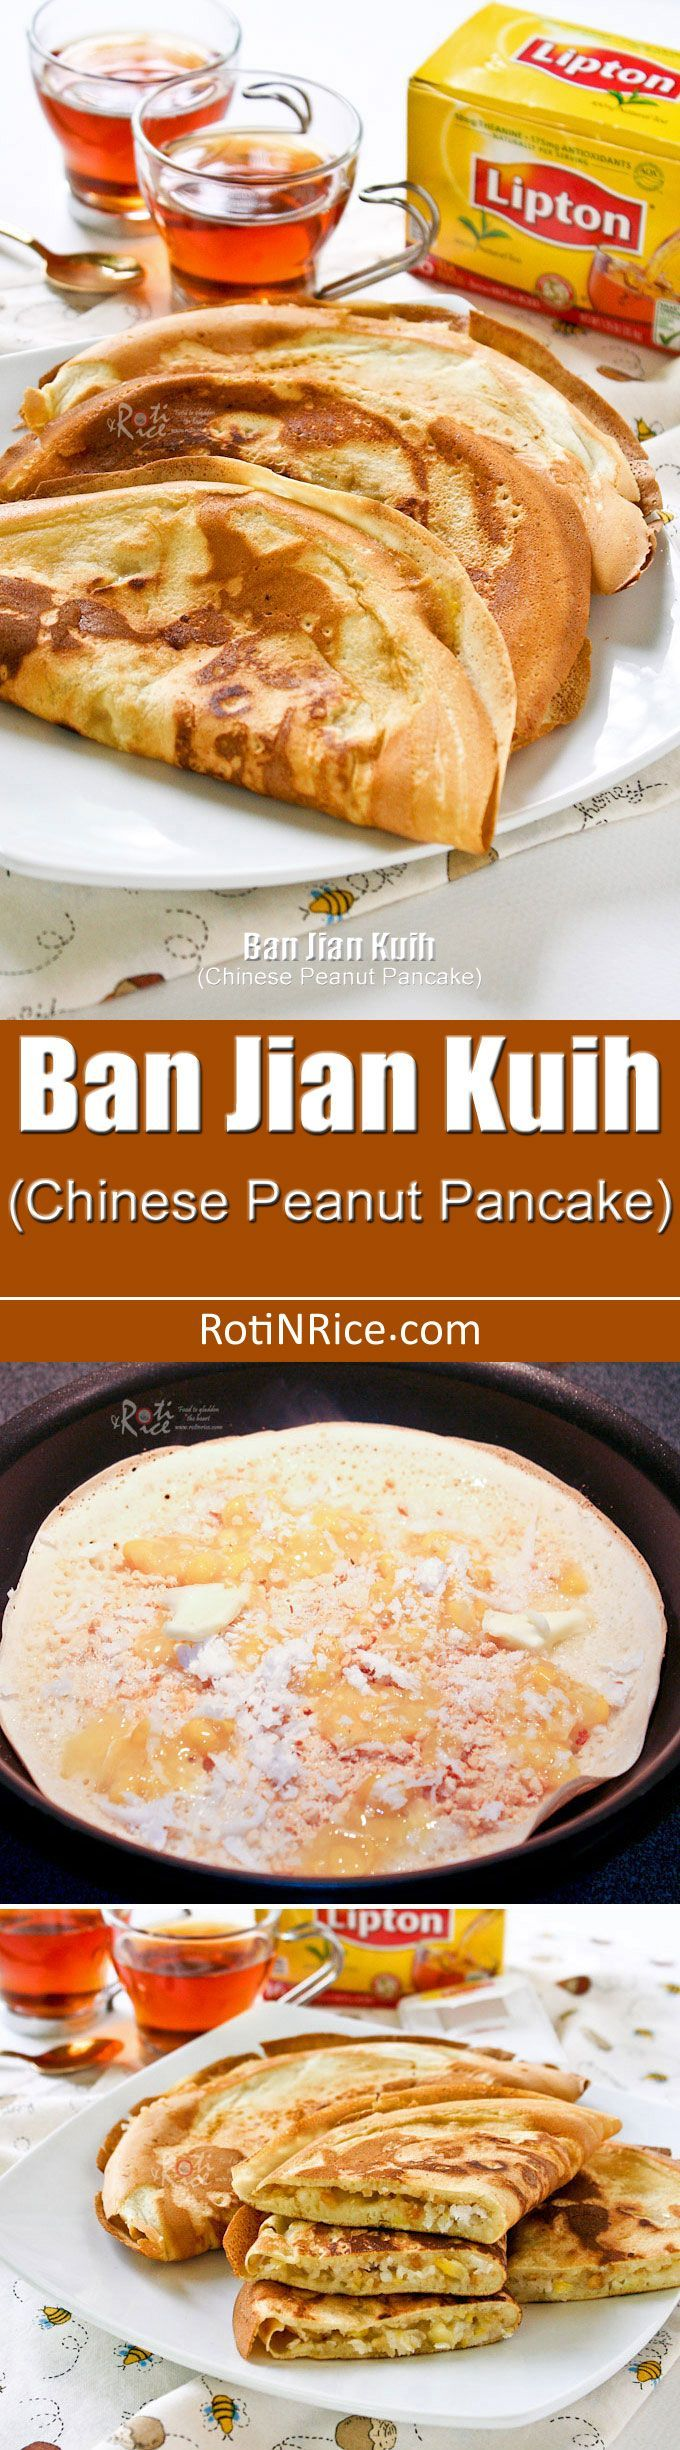 Delicious homemade Ban Jian Kuih (Chinese Peanut Pancake) with chopped peanuts, cream style corn, and grated coconut filling. | RotiNRice.com